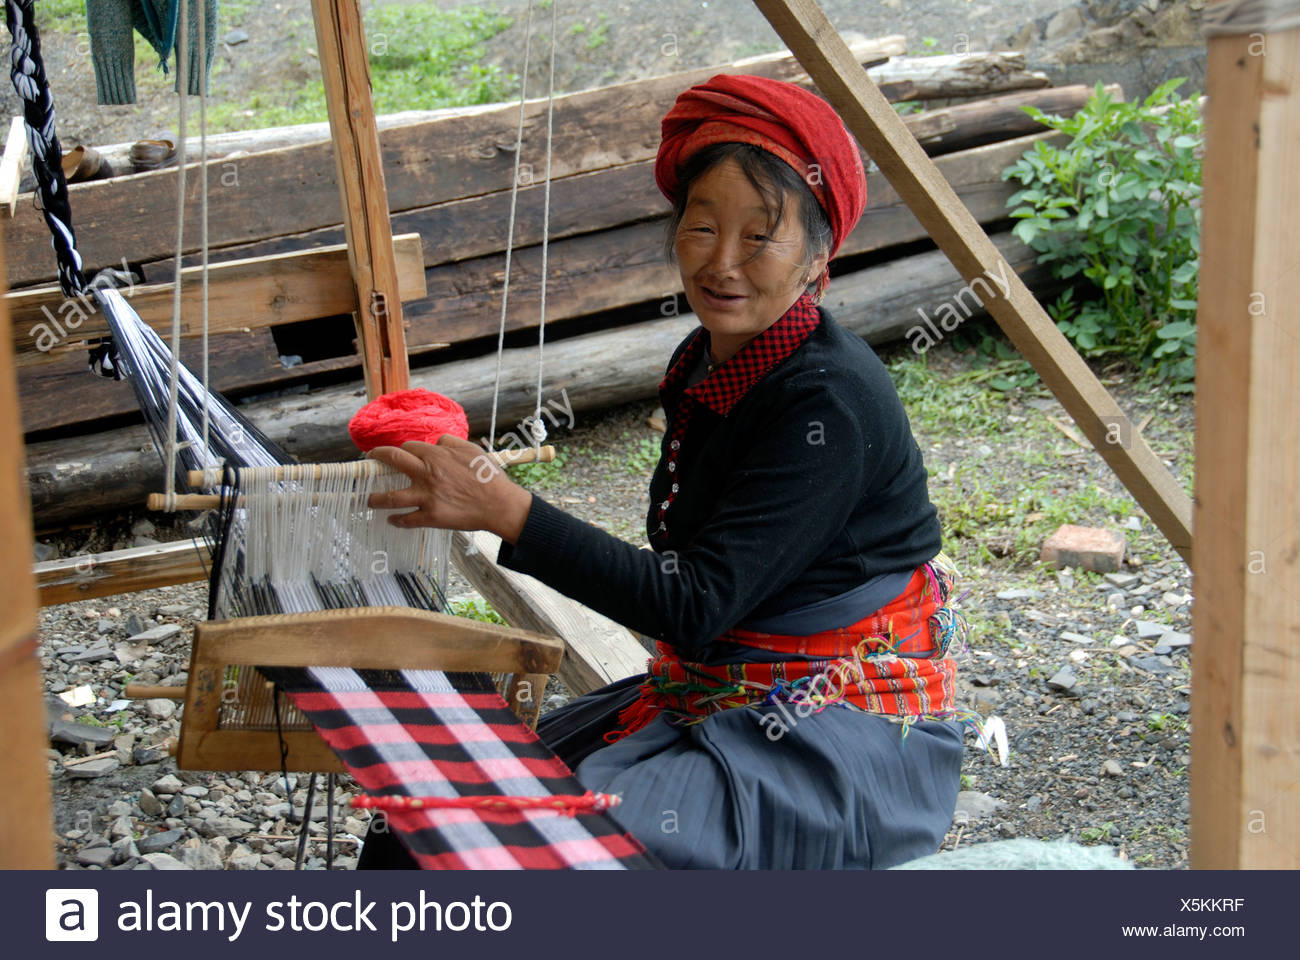 Weaving, ethnology, woman of the Mosu ethnicity weaving cloth on the loom, Lige, Lugu Hu Lake, Yunnan Province, People's Republ - Stock Image